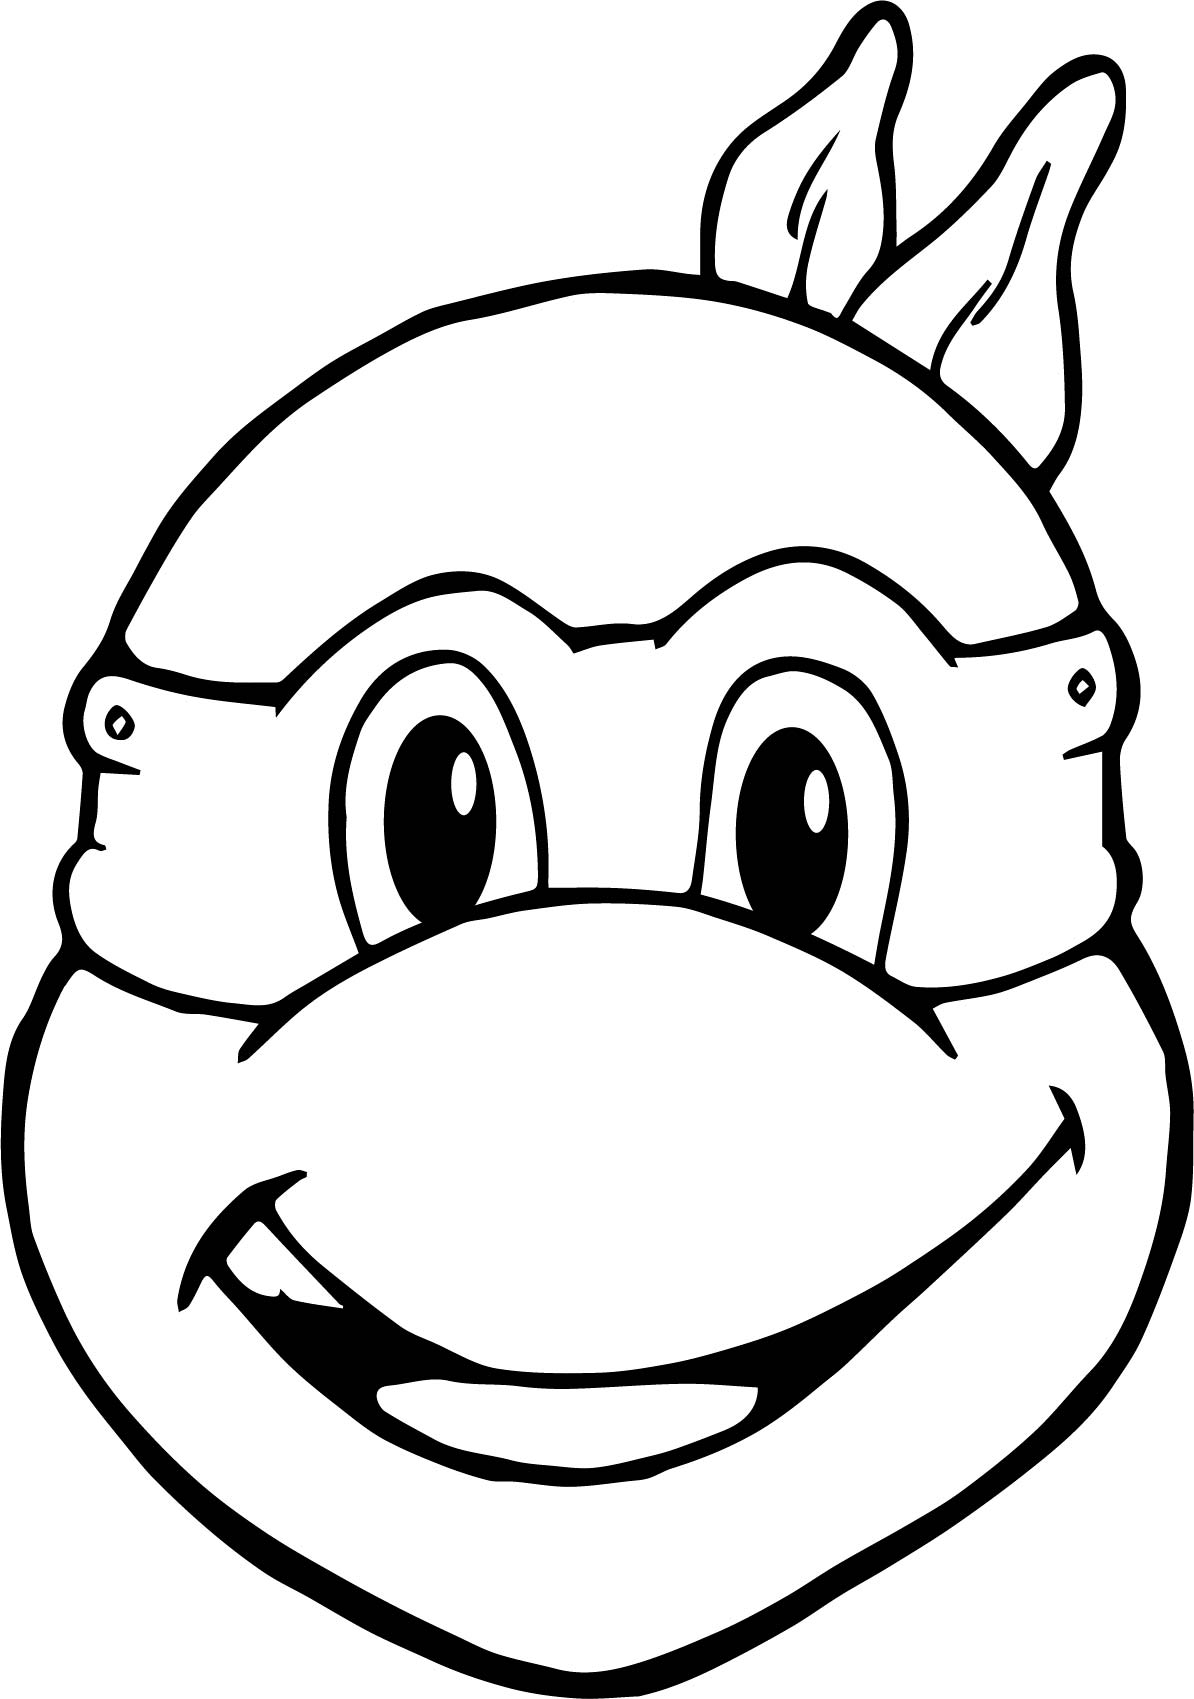 Coloring pages ninja - Ninja Turtles Head To Head Coloring Pages